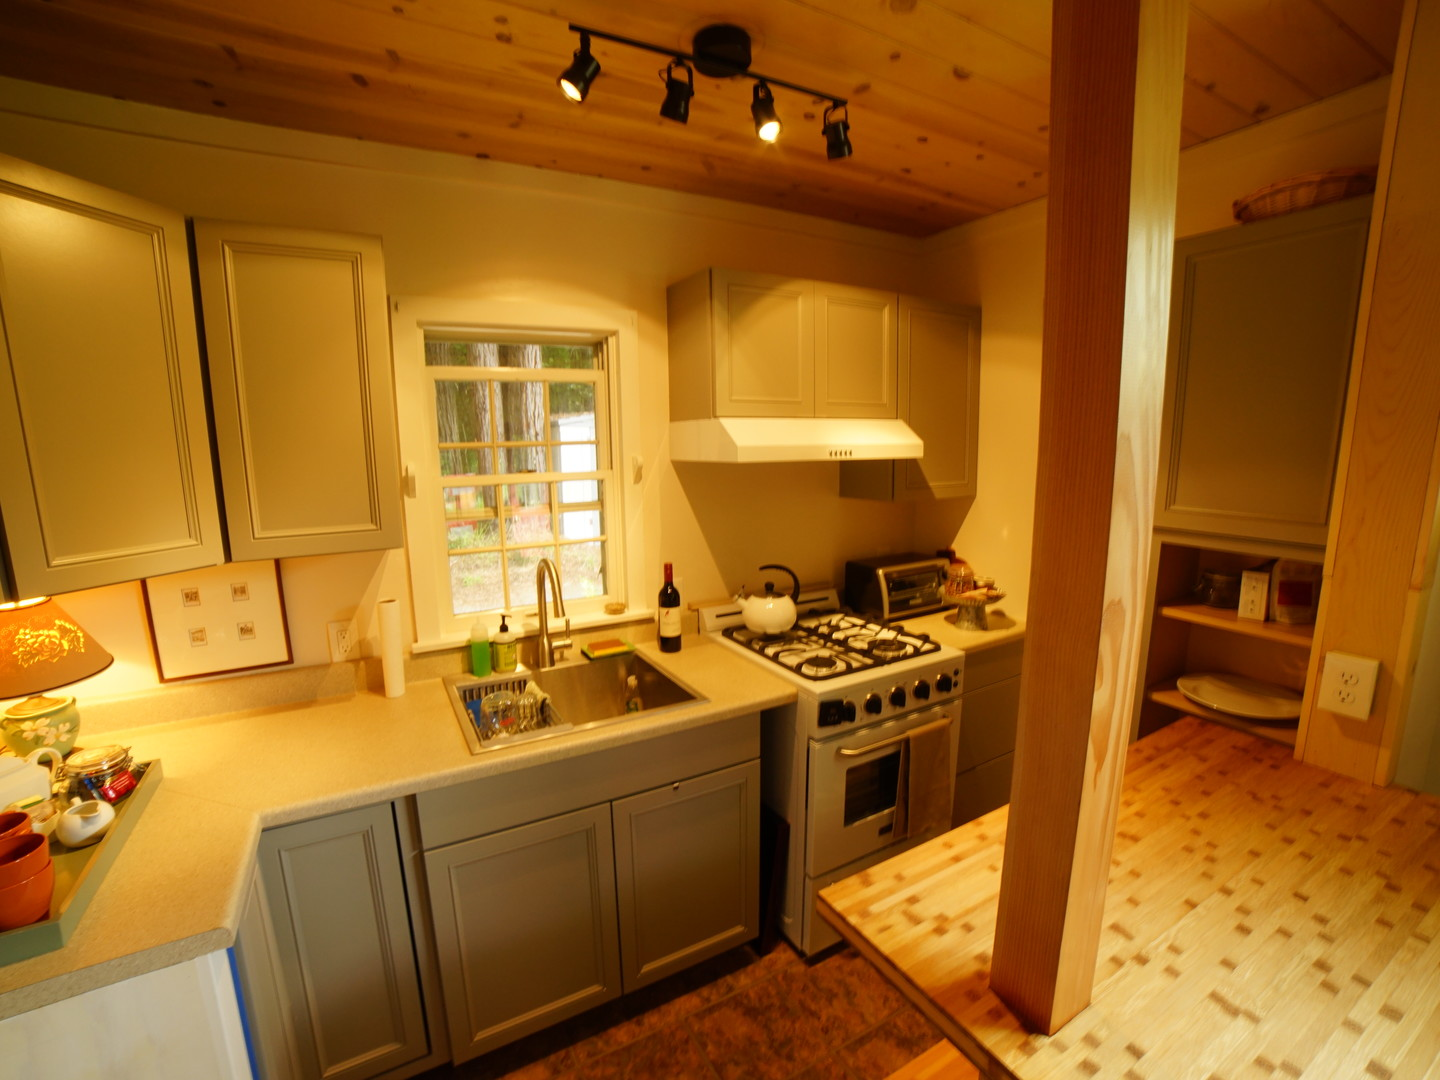 A view of a kitchen at Mendocino Farmhouse.